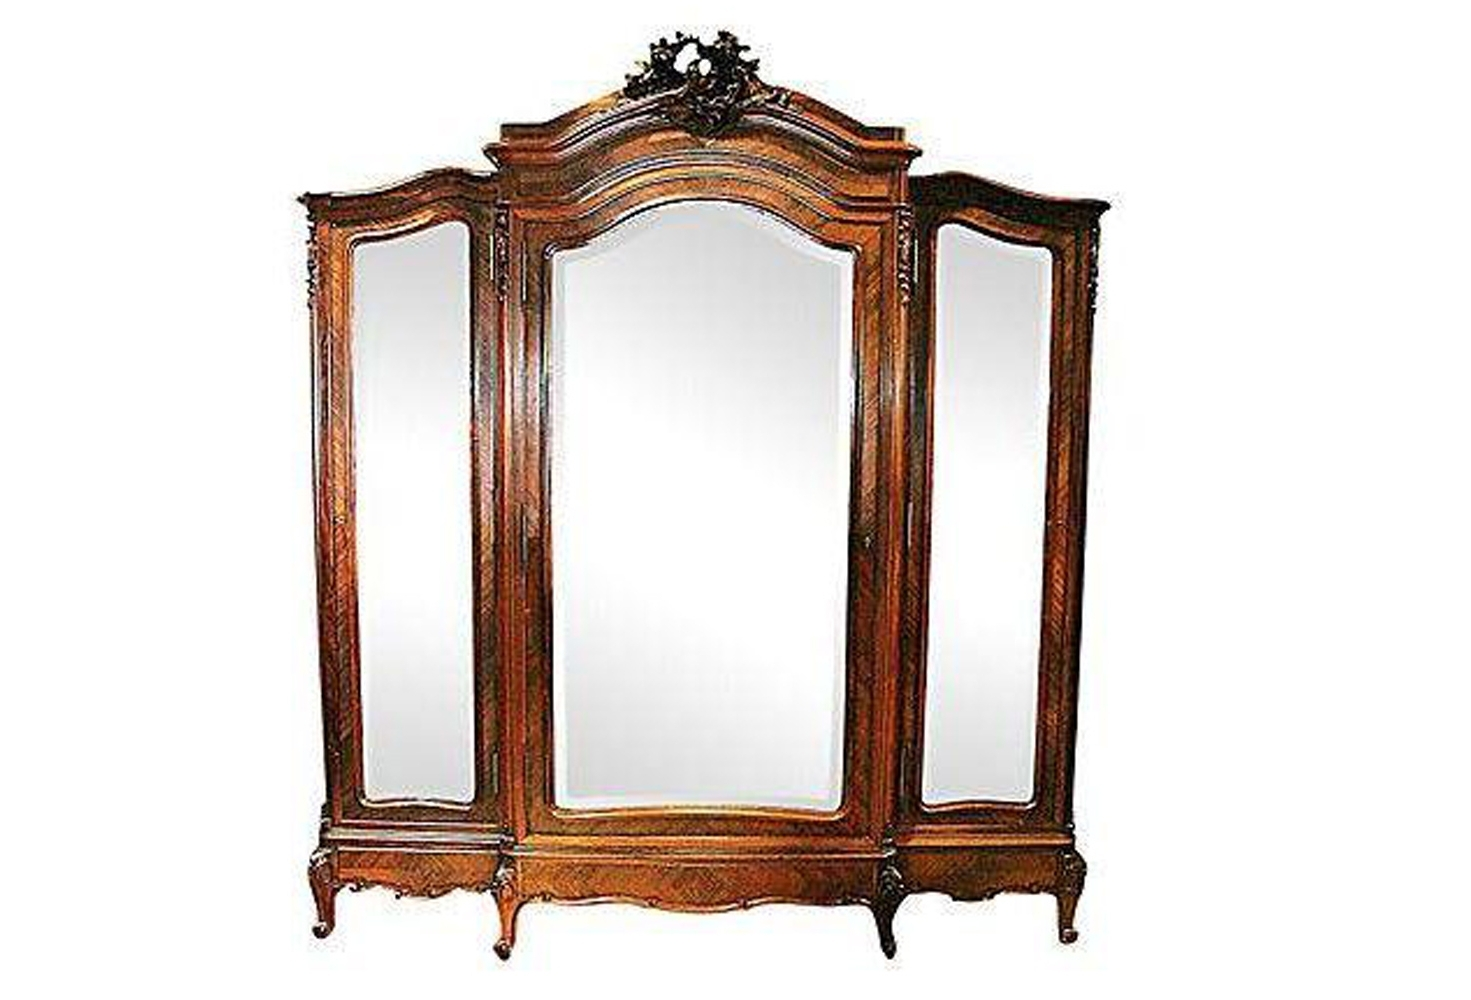 3 Door French Wardrobes Regarding Current Antique French Rosewood 3 Door Armoire (View 2 of 15)